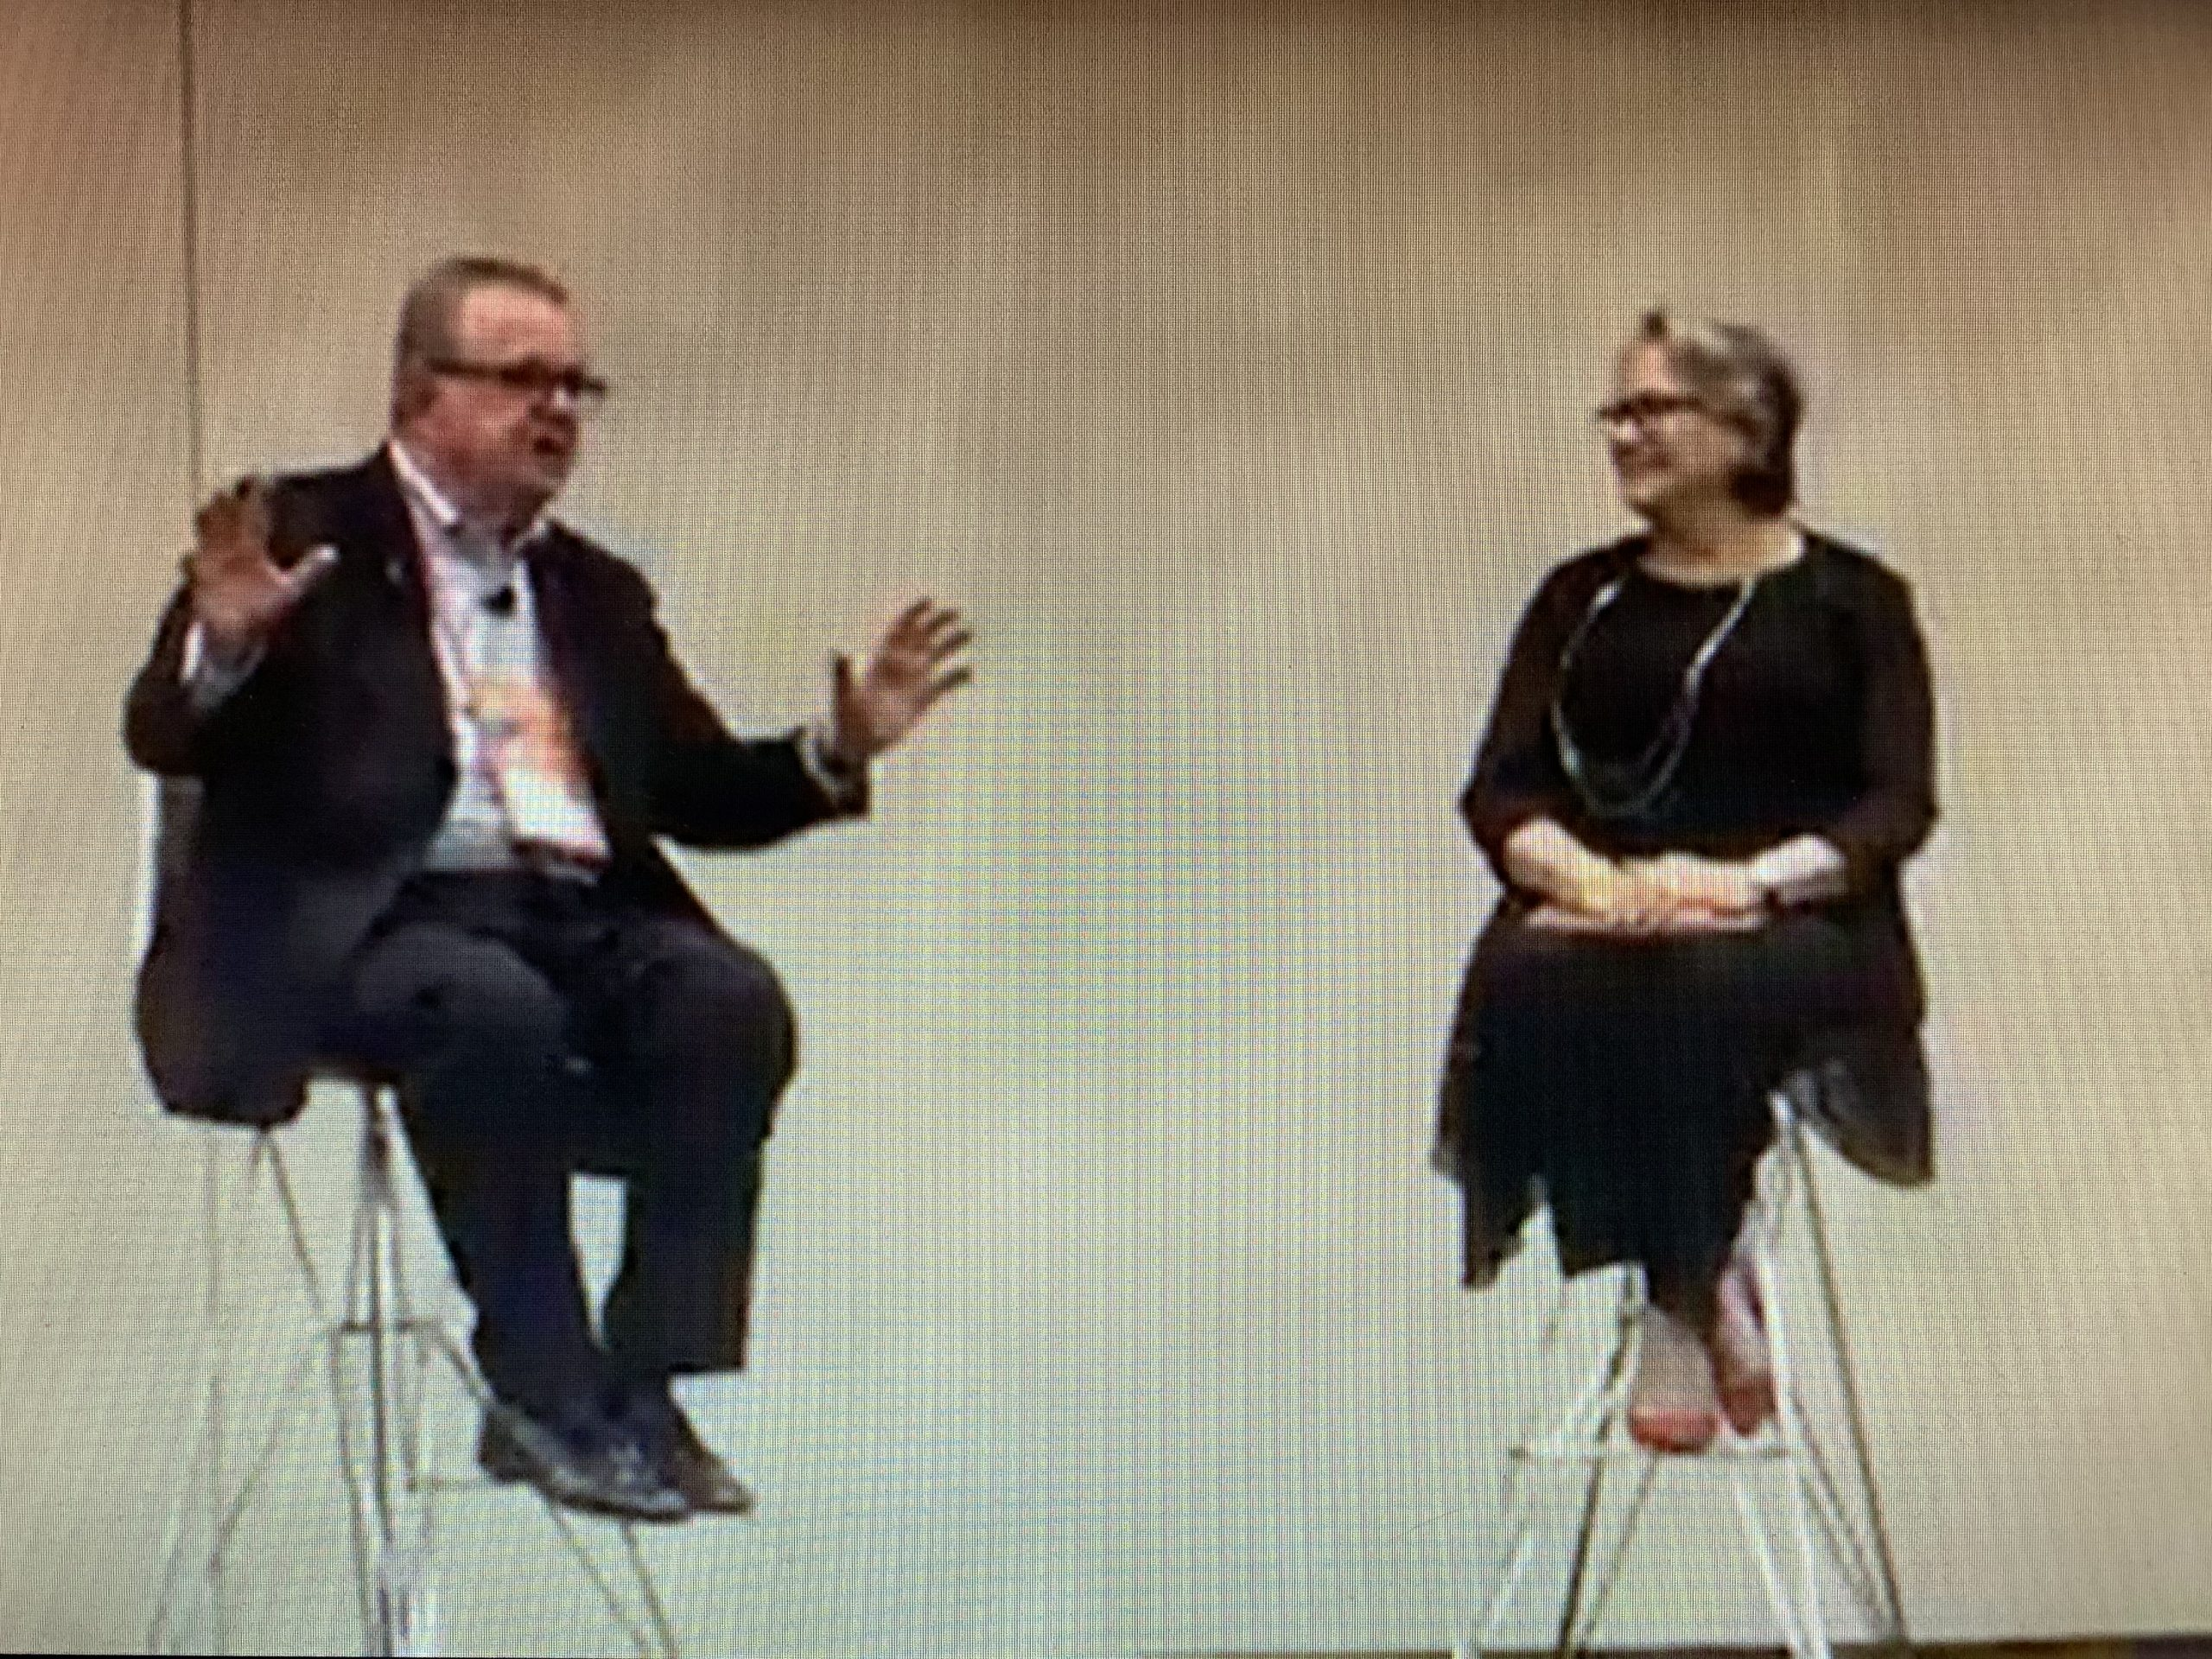 Onsite Interview with Barry Banther, CSP, 2019